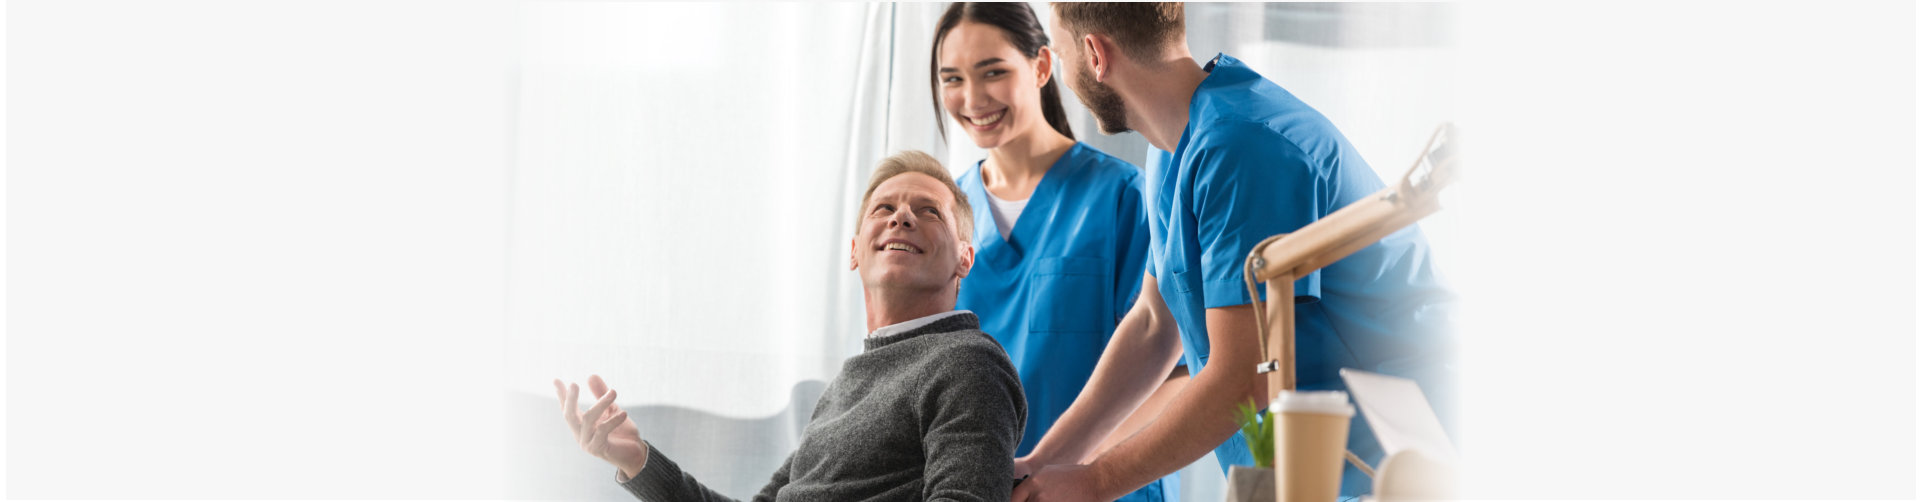 smiling doctors and patient on wheelchair talking